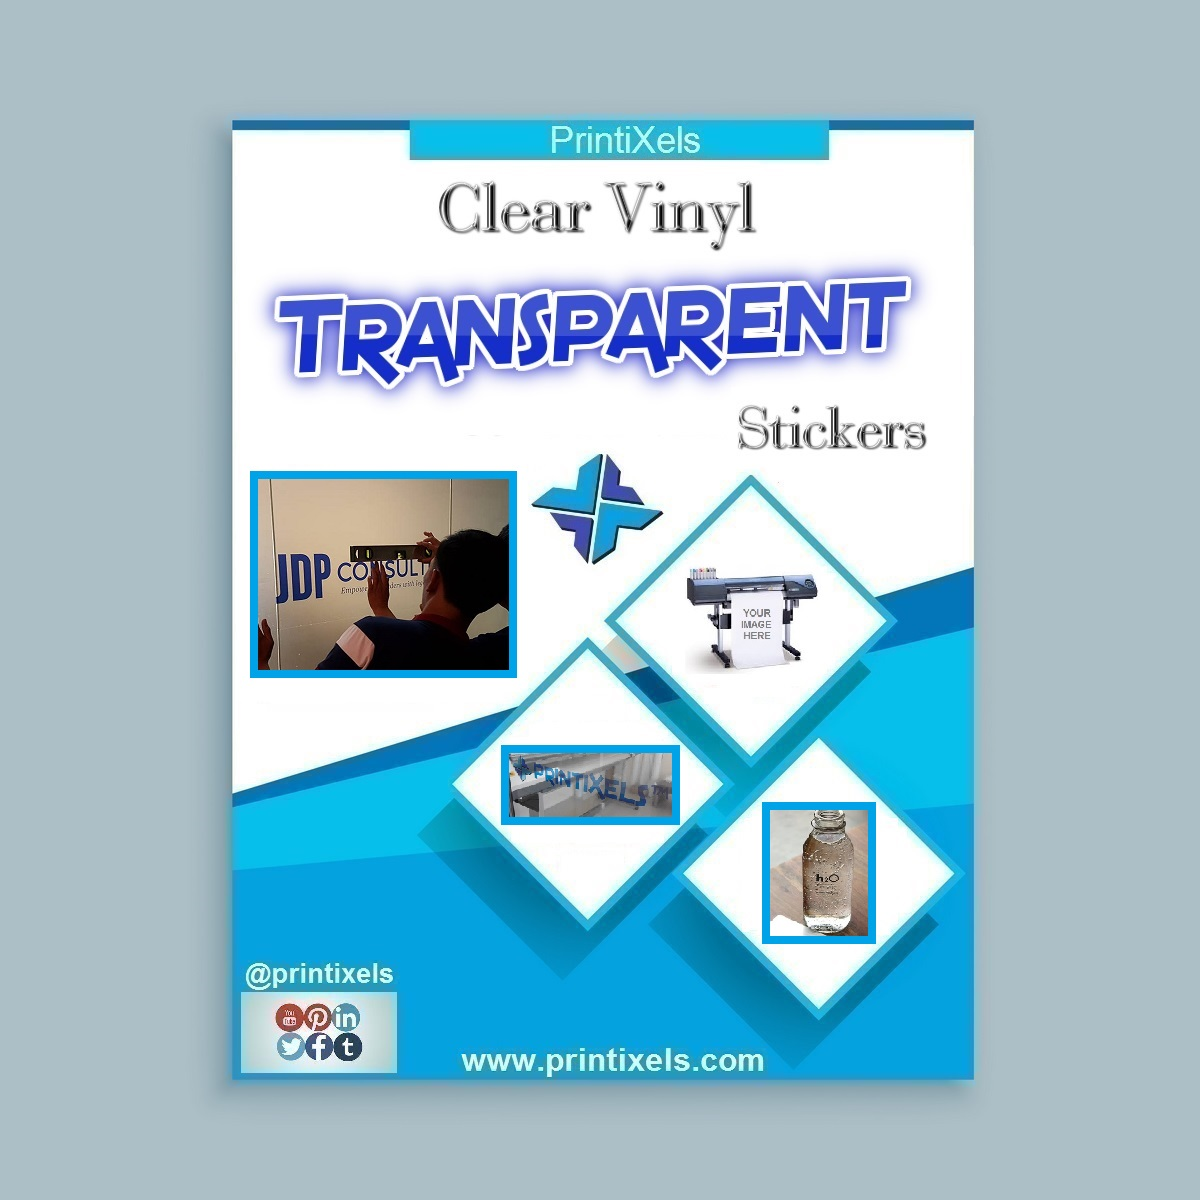 Clear Vinyl, Transparent Stickers & Decals